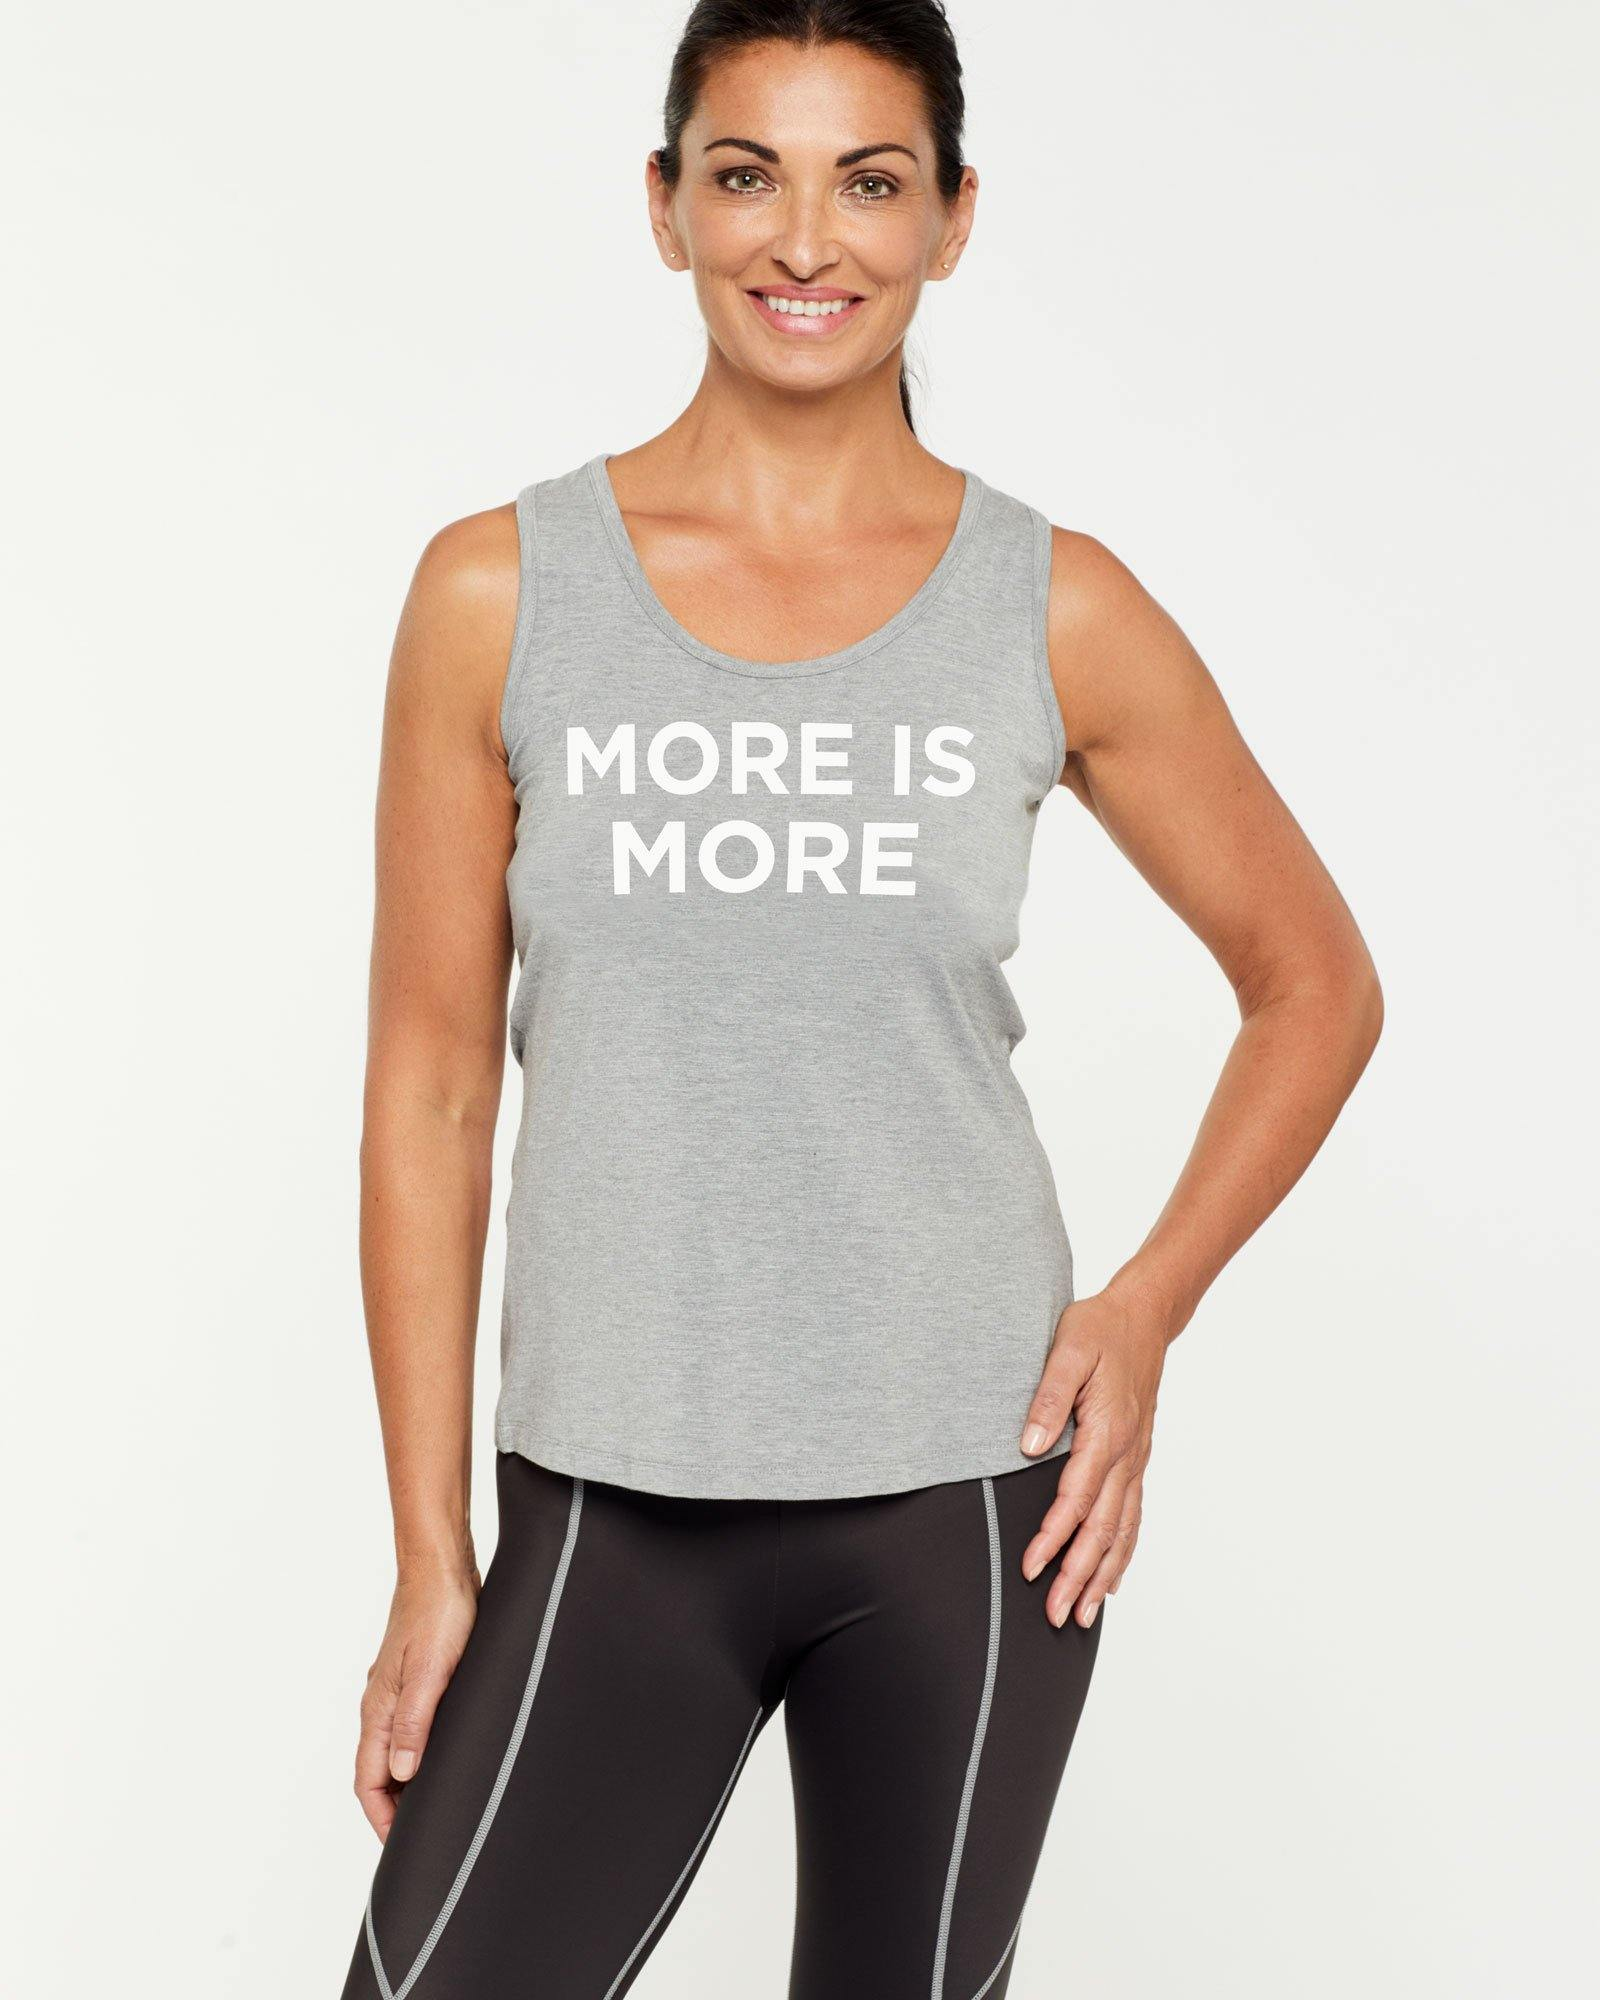 STEELY RHOMBOIDEUS LIGHT GREY TANK TOP, MORE IS MORE message on front in white, worn with Vastus mid-waist full length legging, front view